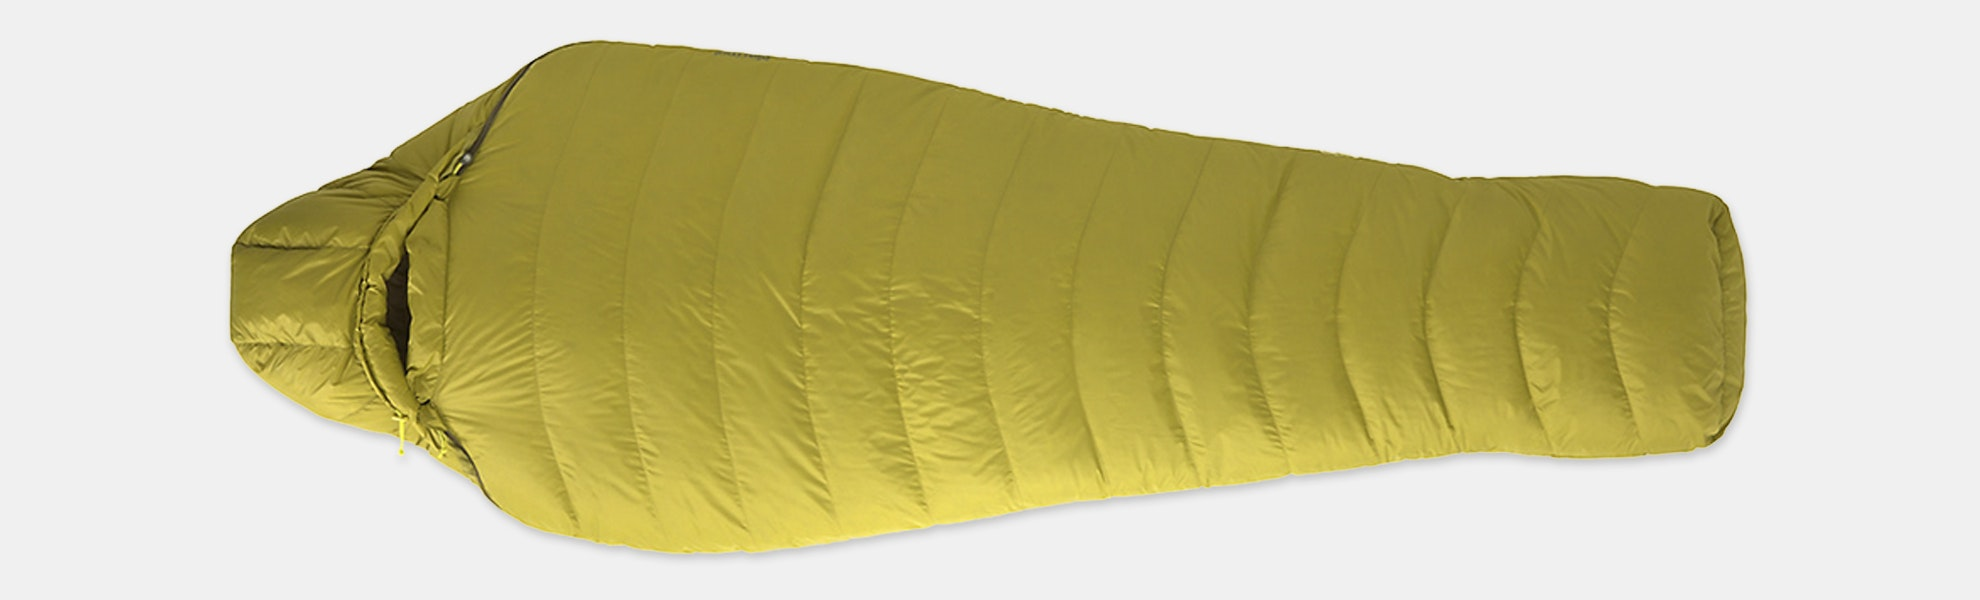 Marmot 800fp Down Sleeping Bags